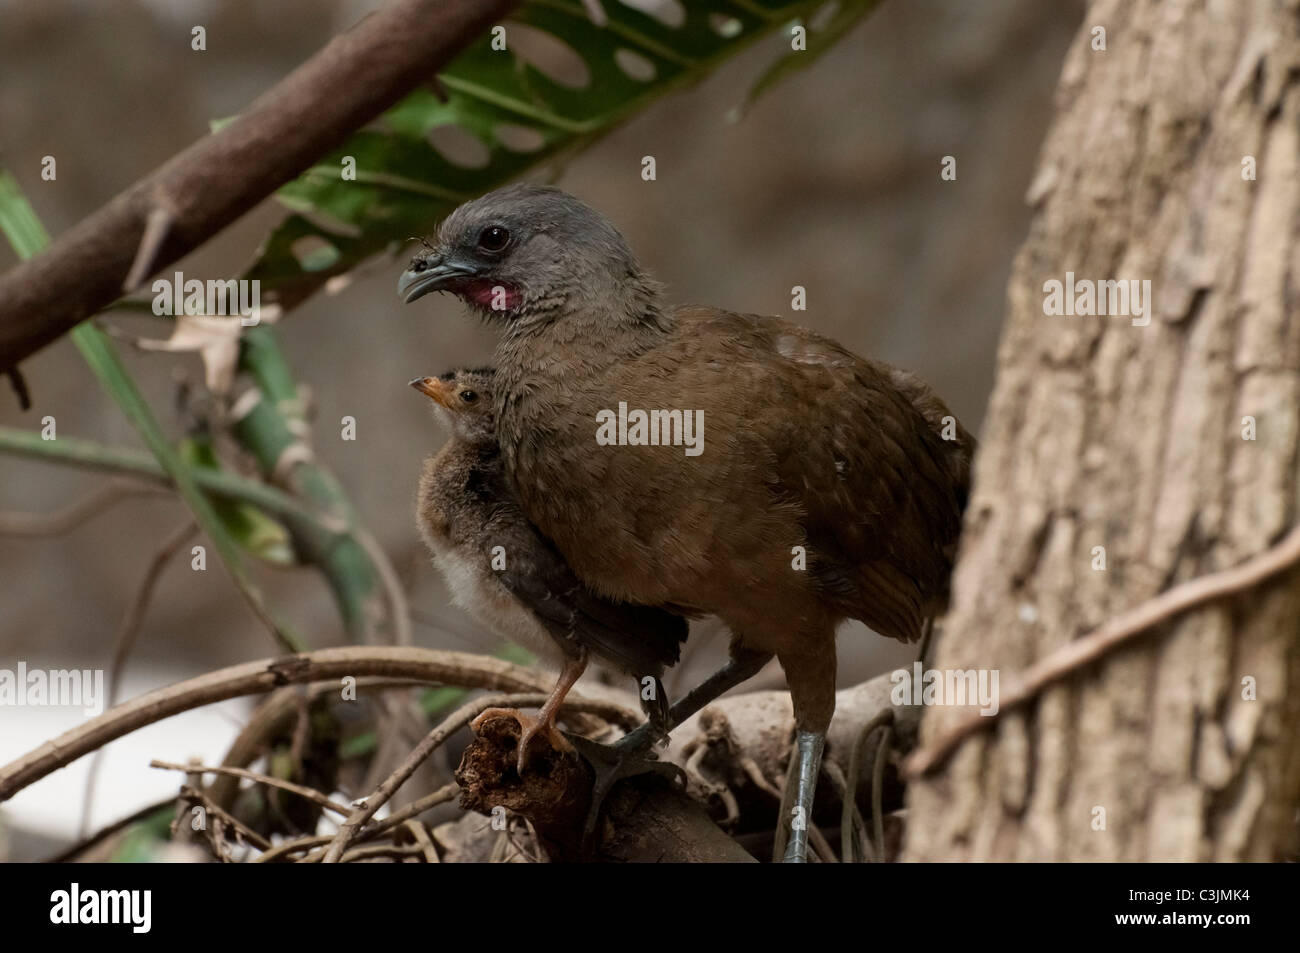 A Plain Chachalaca adult and chick. - Stock Image